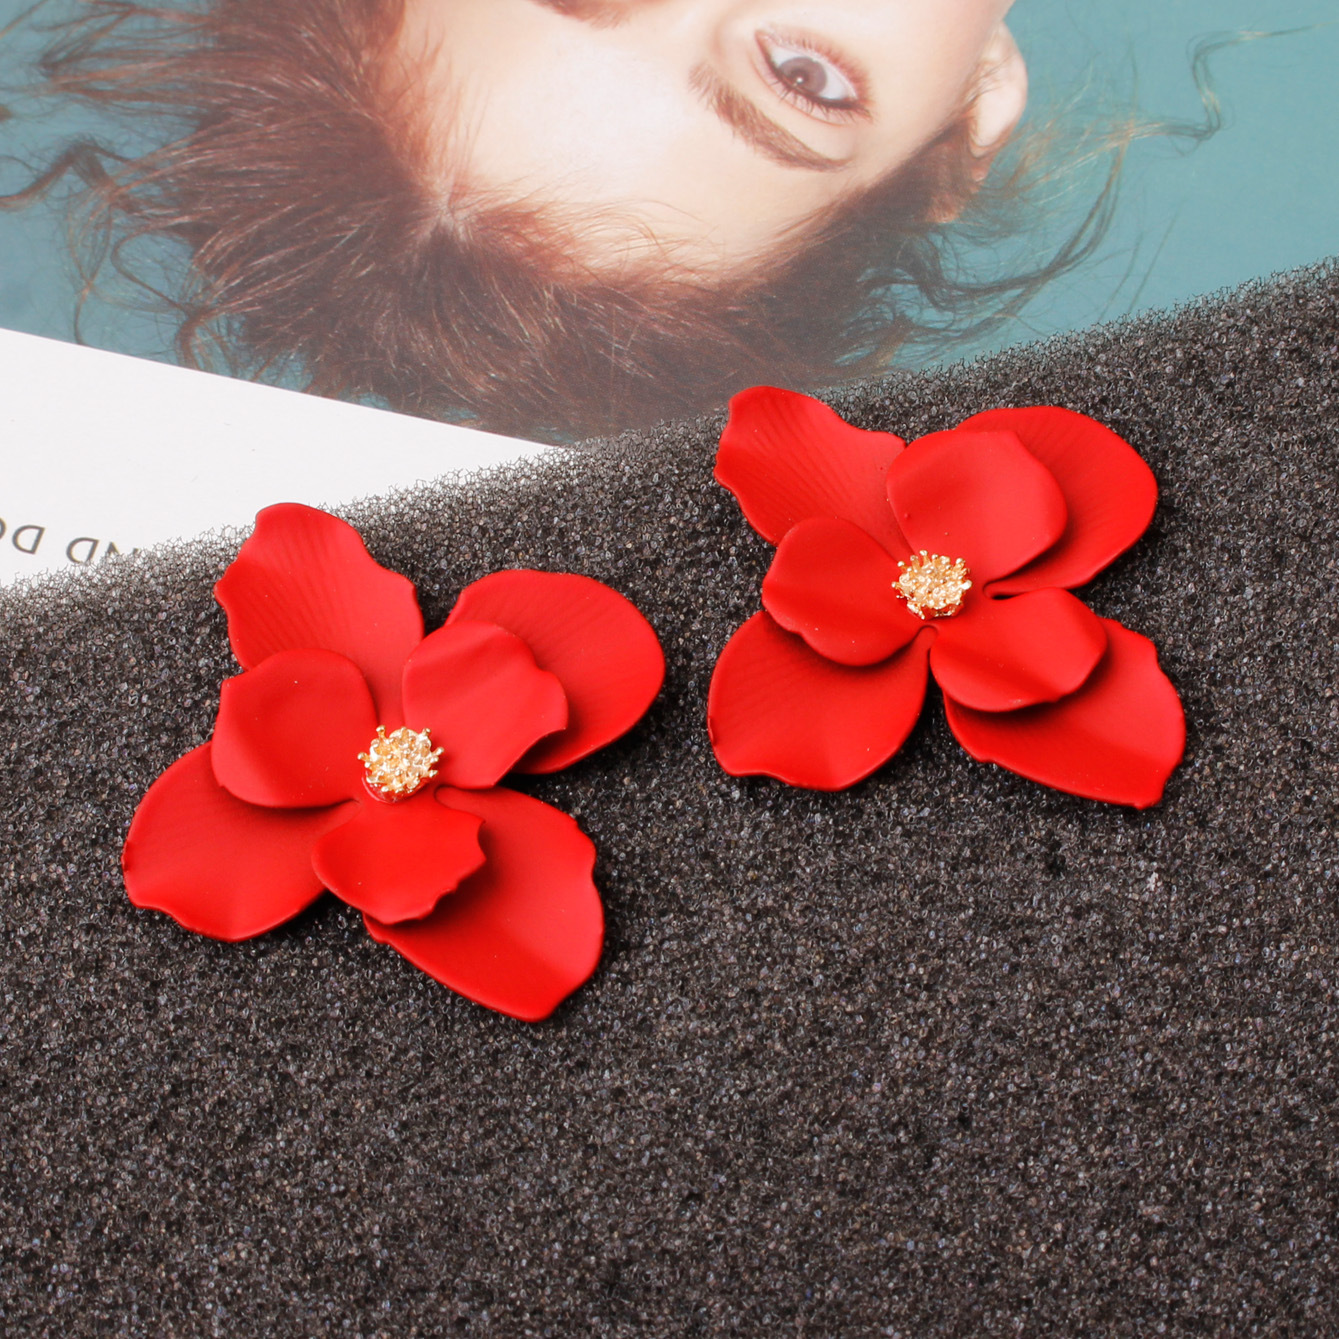 24 Styles red Korean Style Cute <font><b>Flower</b></font> Stud <font><b>Earrings</b></font> <font><b>For</b></font> <font><b>Women</b></font> <font><b>2019</b></font> New Fashion Sweet <font><b>Earrings</b></font> Femme Brinco Wholesale Jewelry image